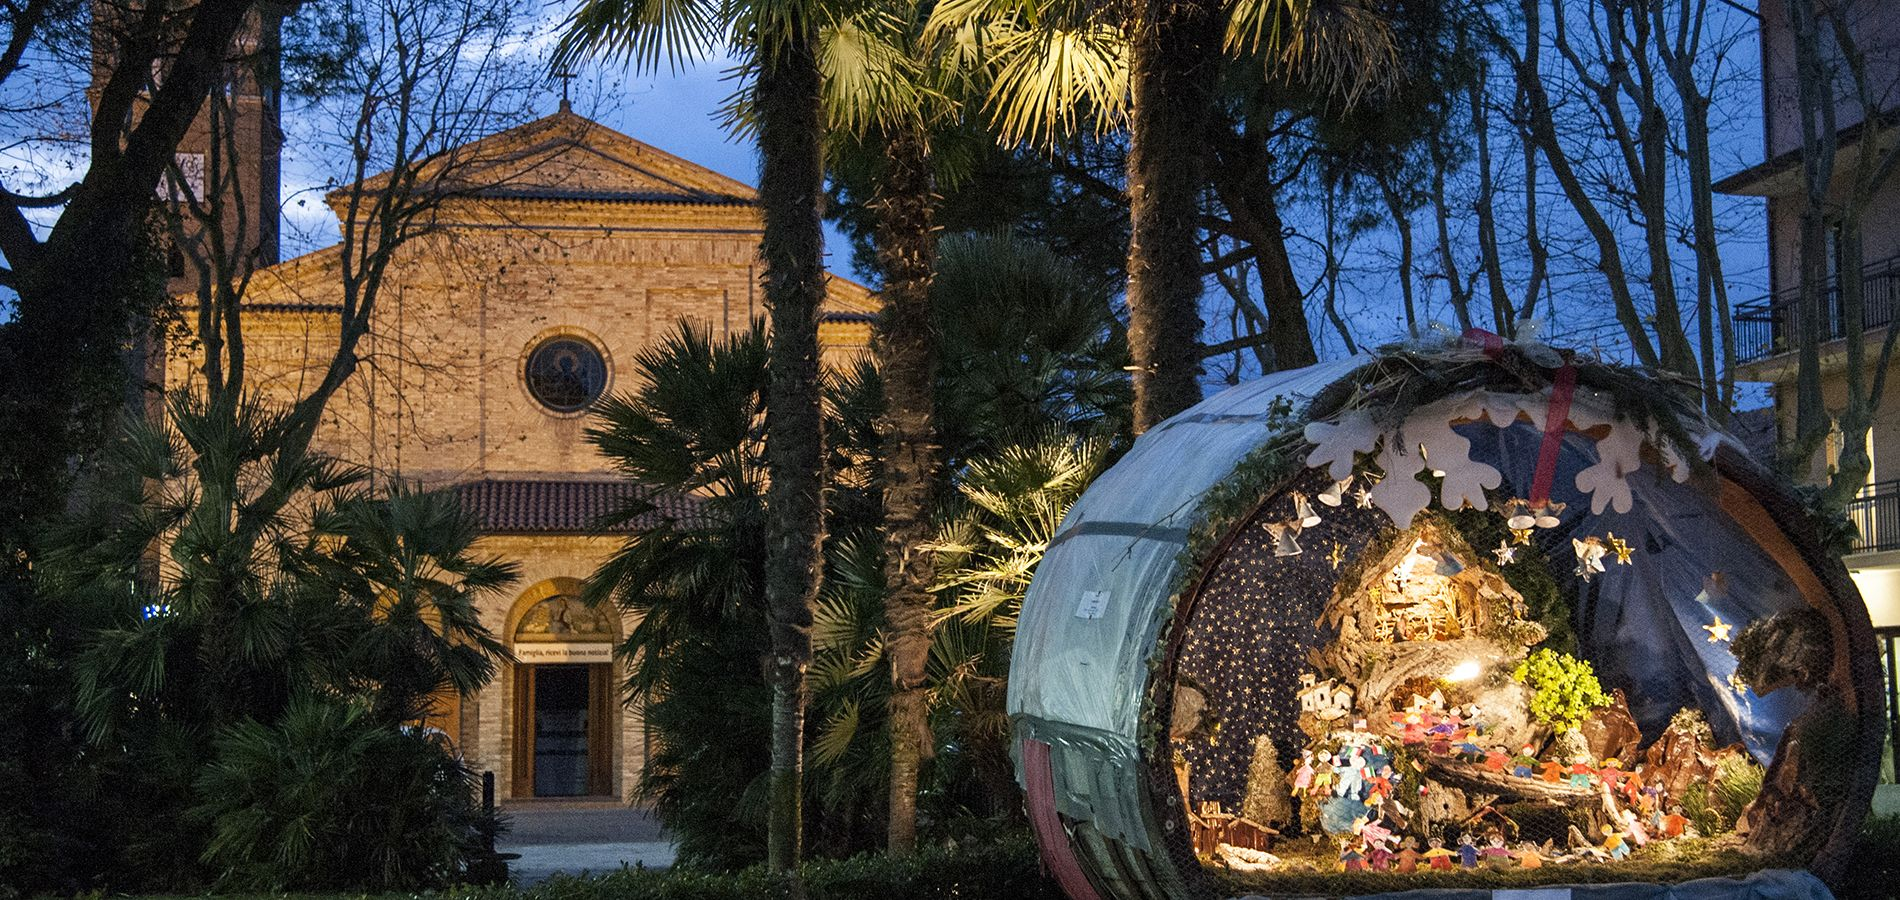 Bellaria Igea Marina in Romagna celebrates with 21 handmade barrel presepe around the town - see how many you can find!